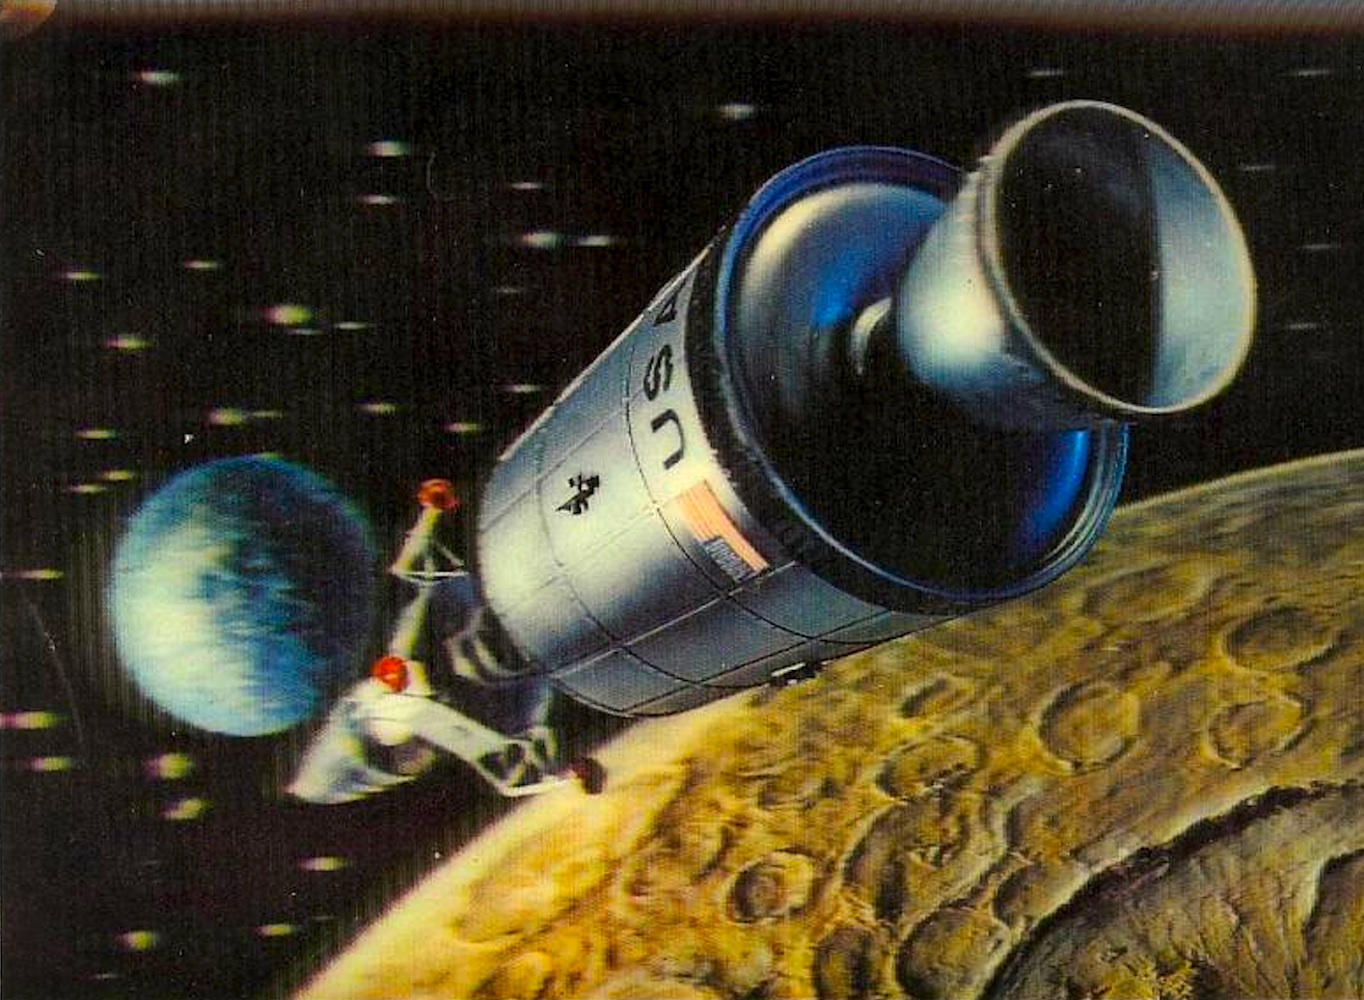 Vintage nasa art page 4 pics about space for Retro outer space